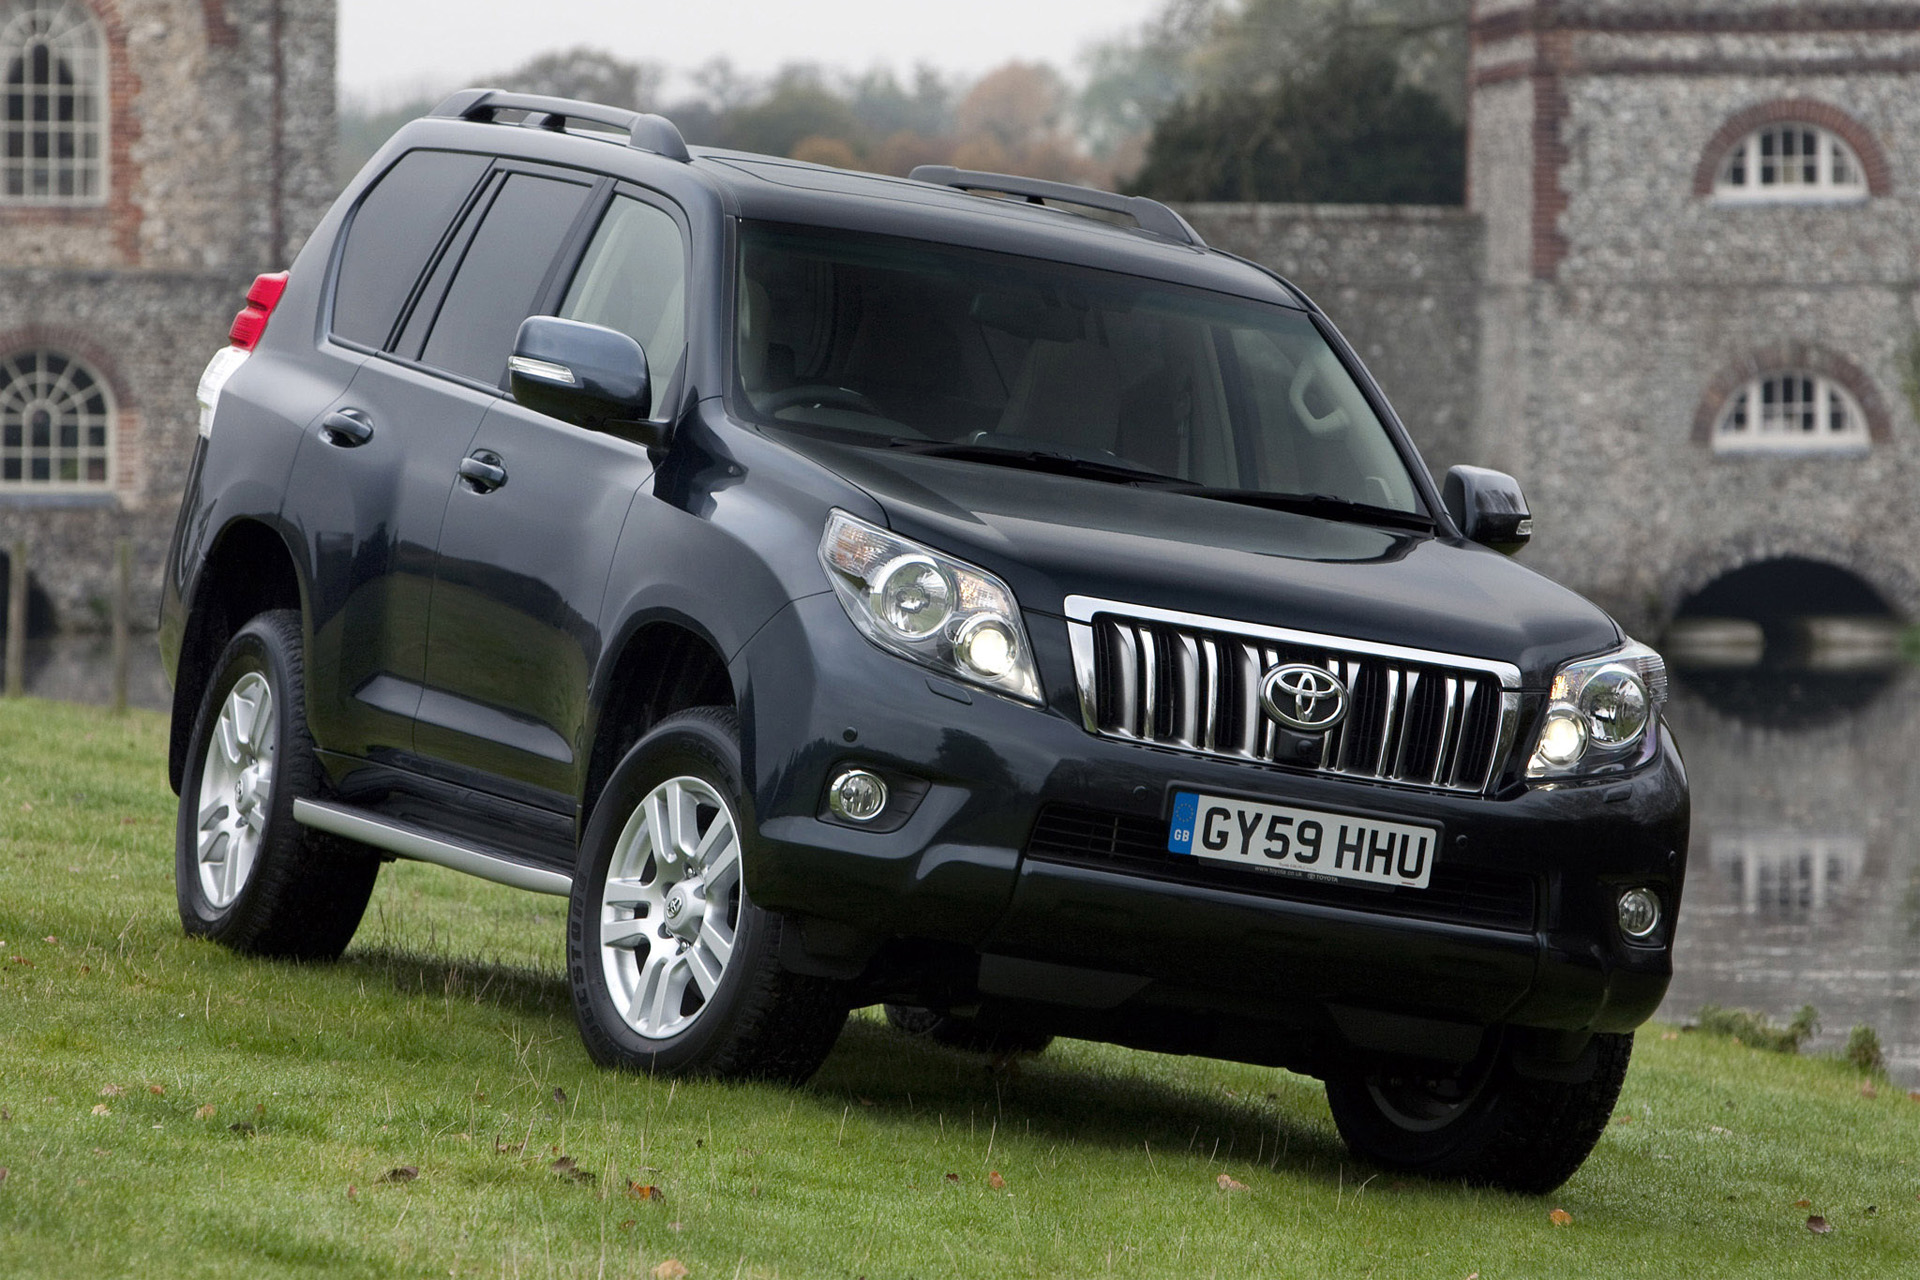 Photo of Toyota Land Cruiser Prado 150 #69428. Image size: 1920 x 1280